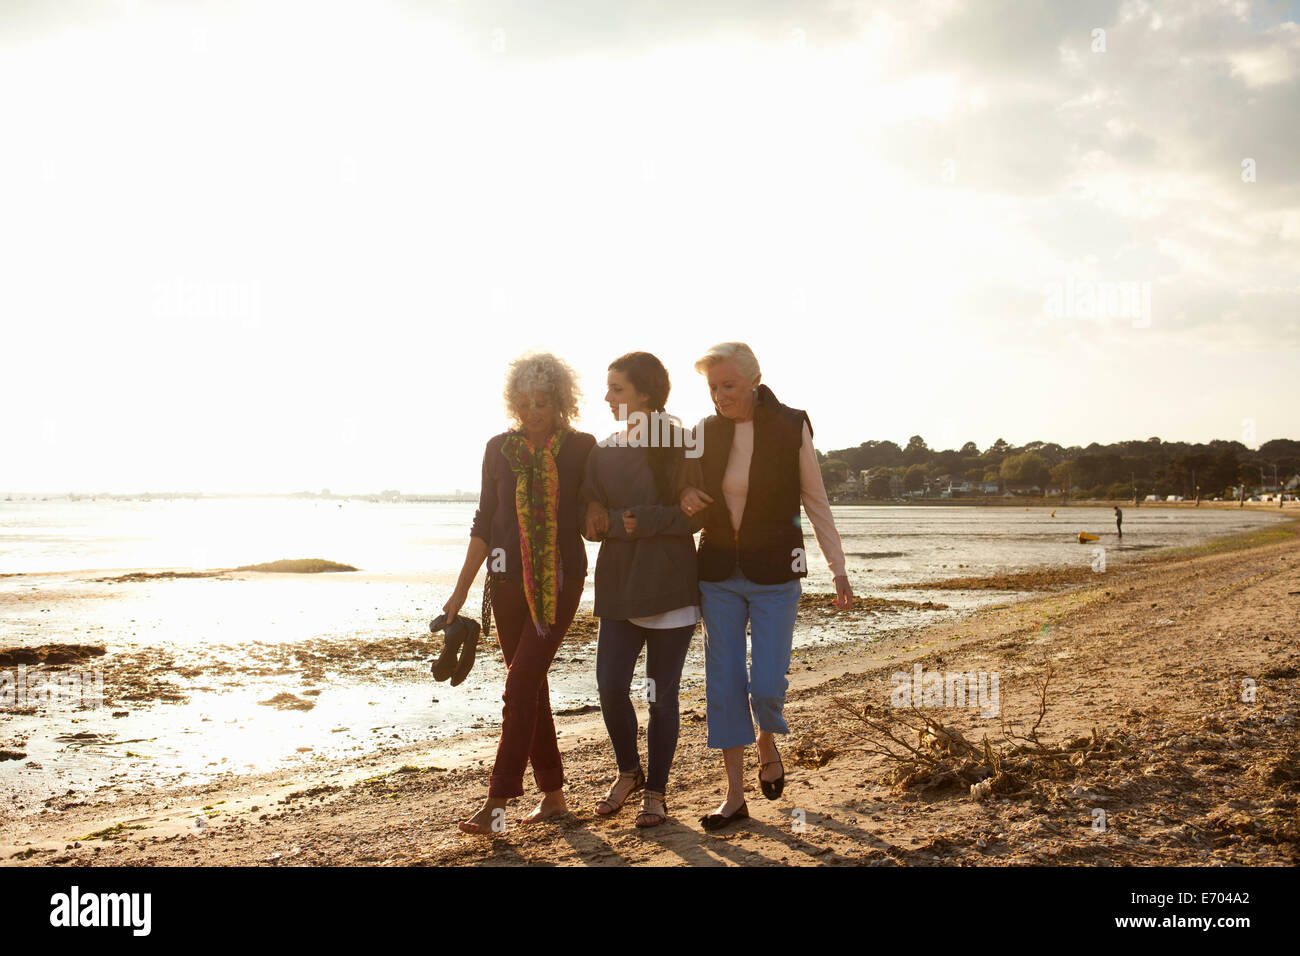 Female family members walking on beach - Stock Image